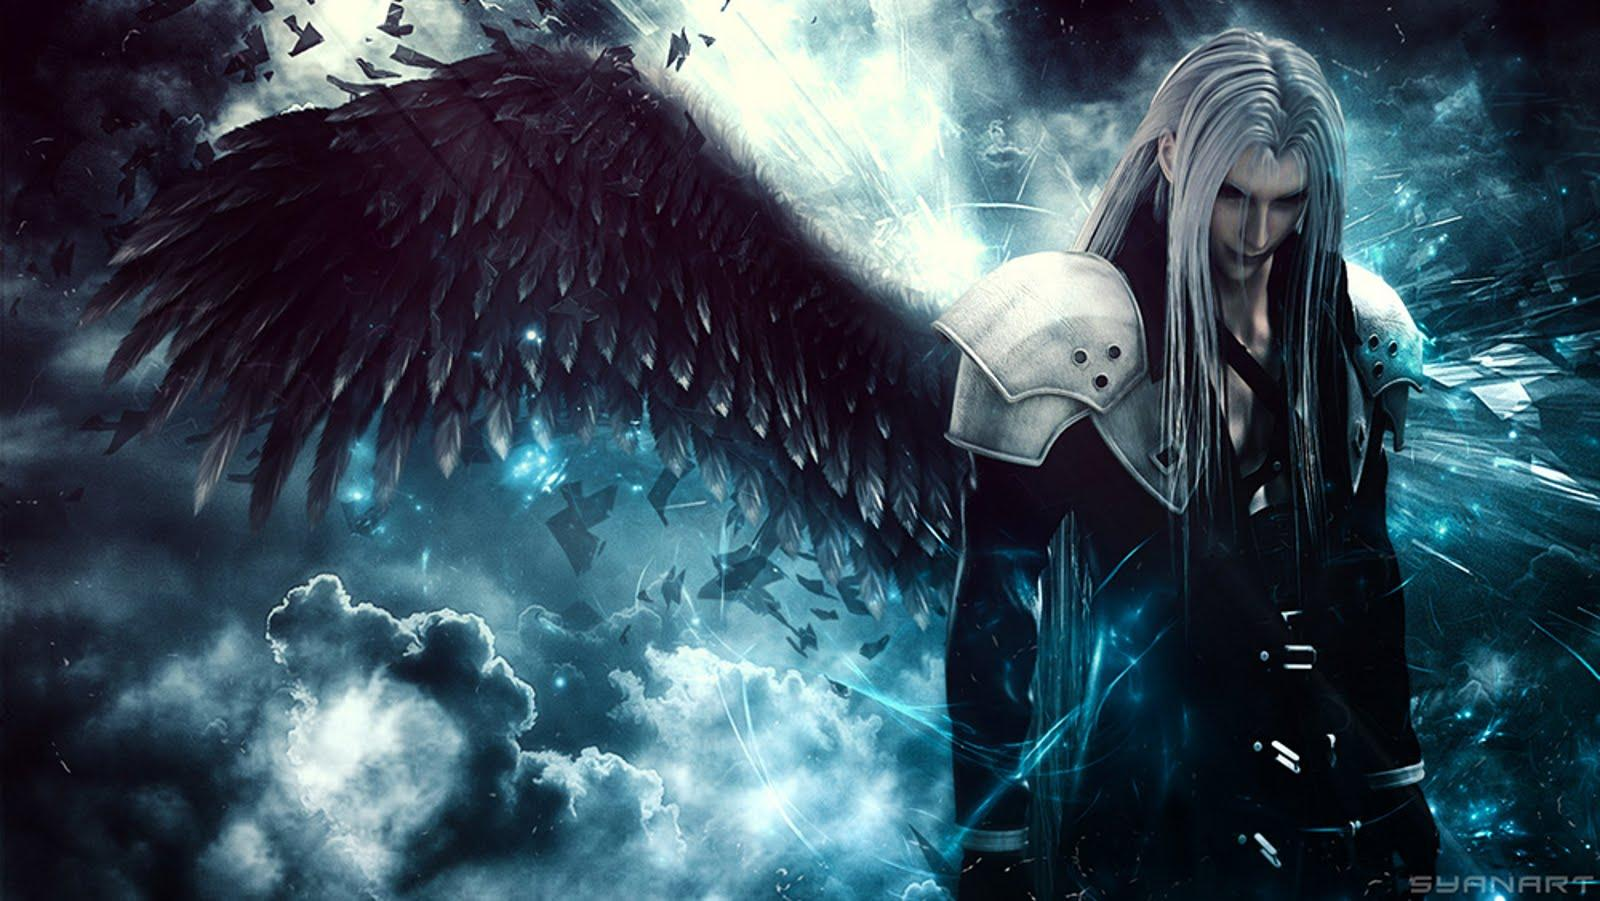 Final Fantasy 7 Sephiroth Wallpapers Hd Wallpaper Cave